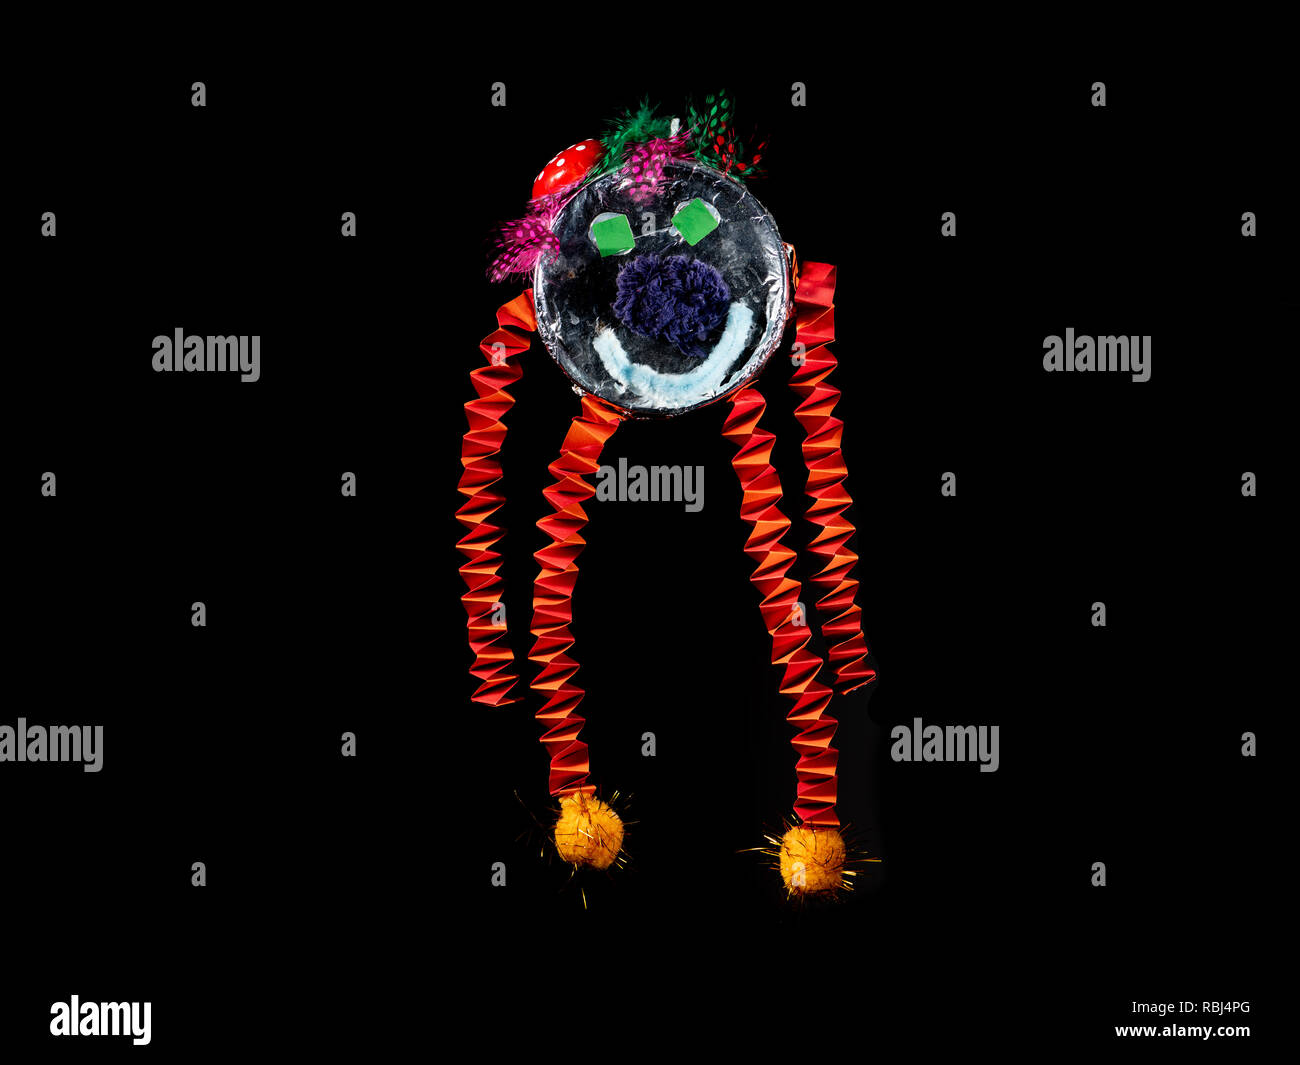 Figure of a funny colorful monster made of paper by a child, black background - Stock Image